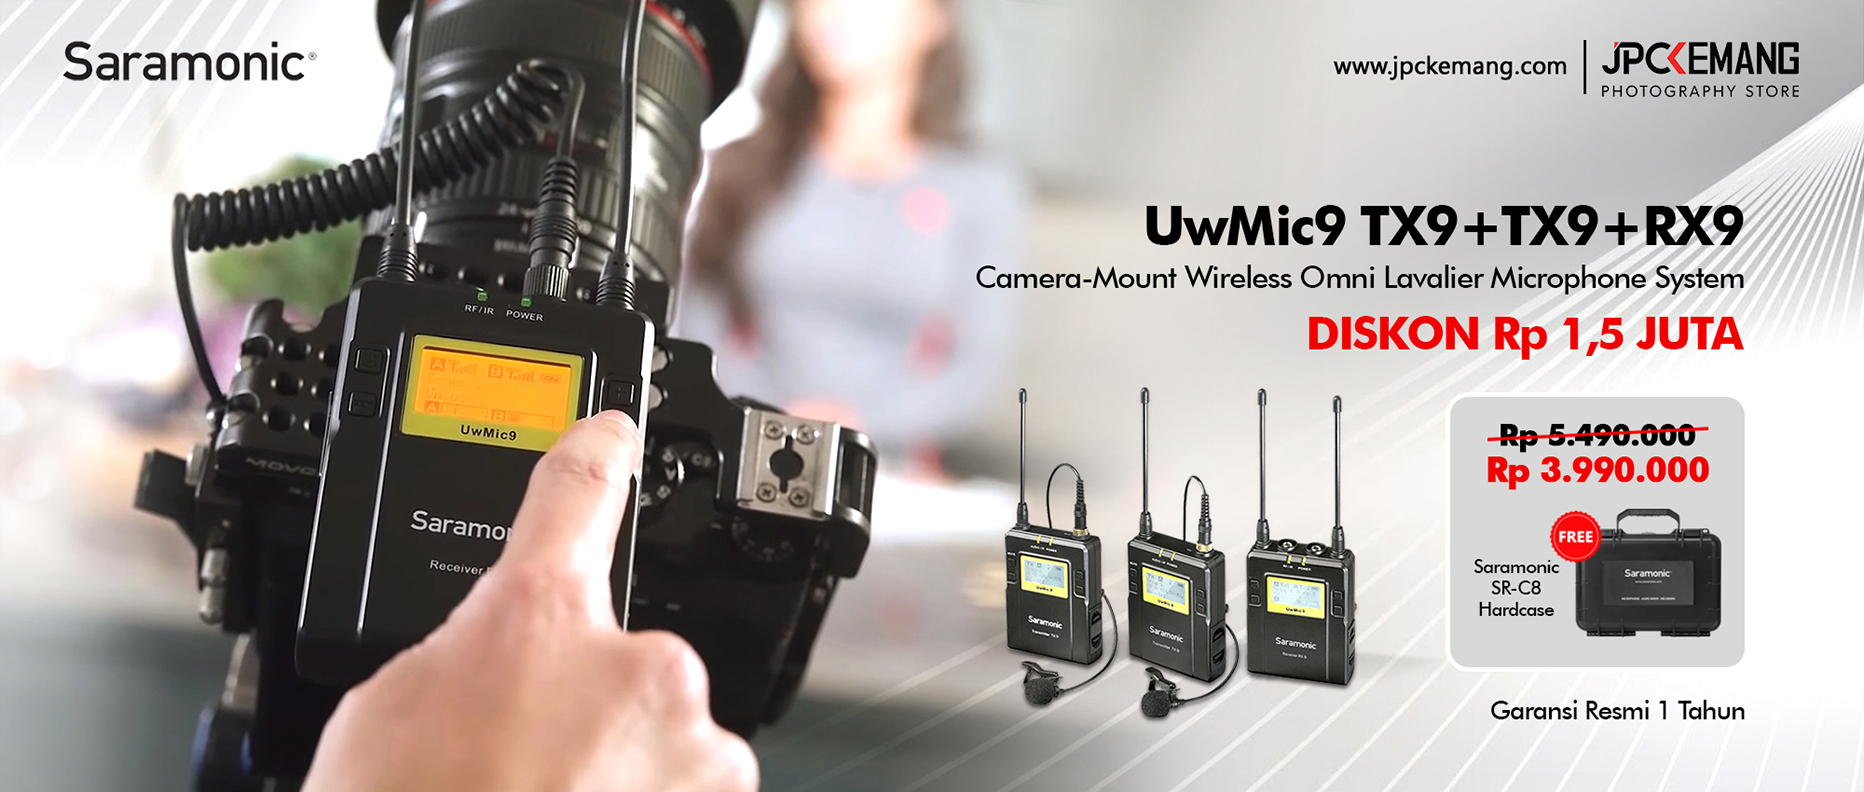 Saramonic UwMic9 Wireless Omni Lavalier Microphone System